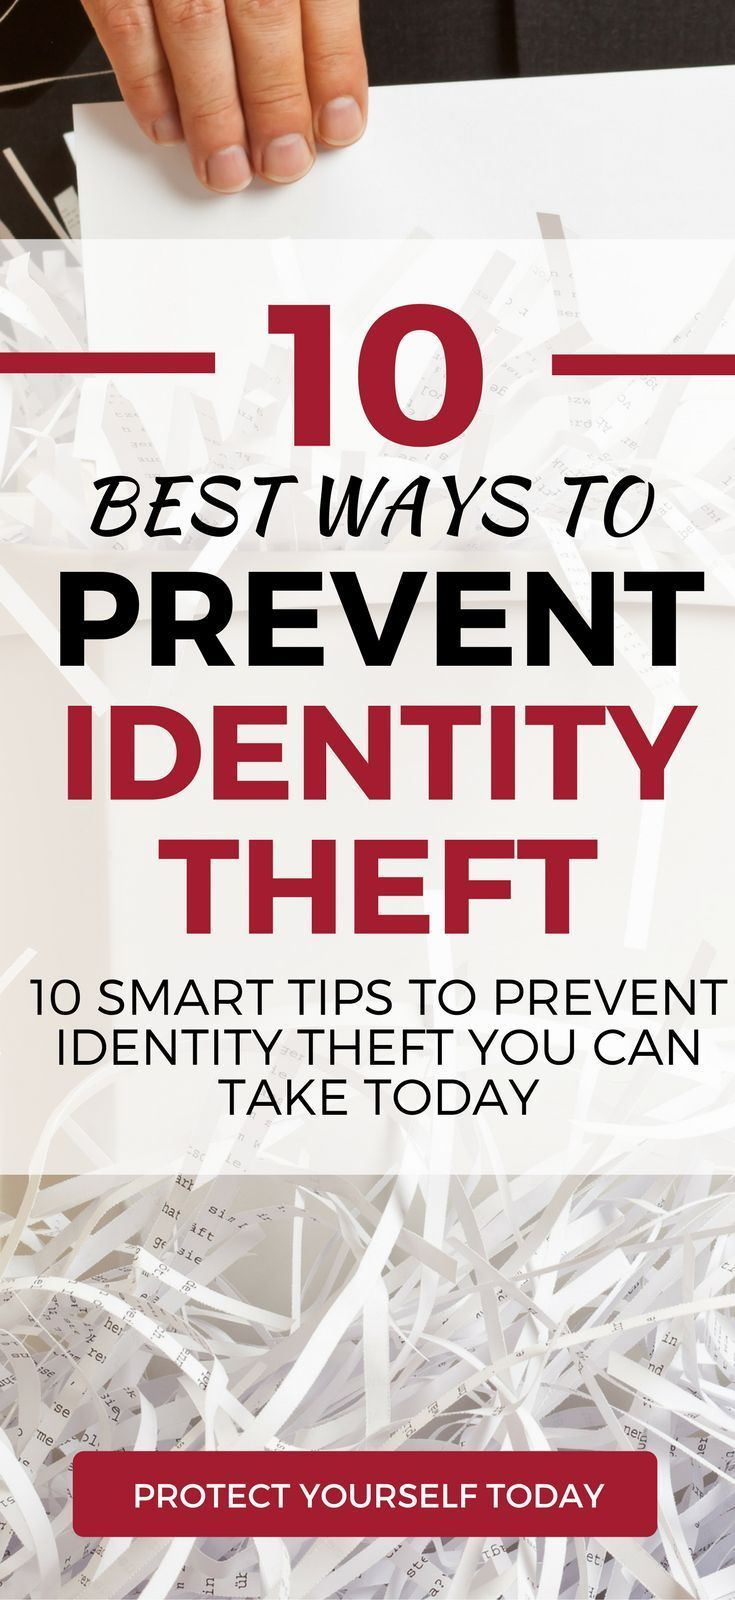 5 most common identity theft scams and how to protect